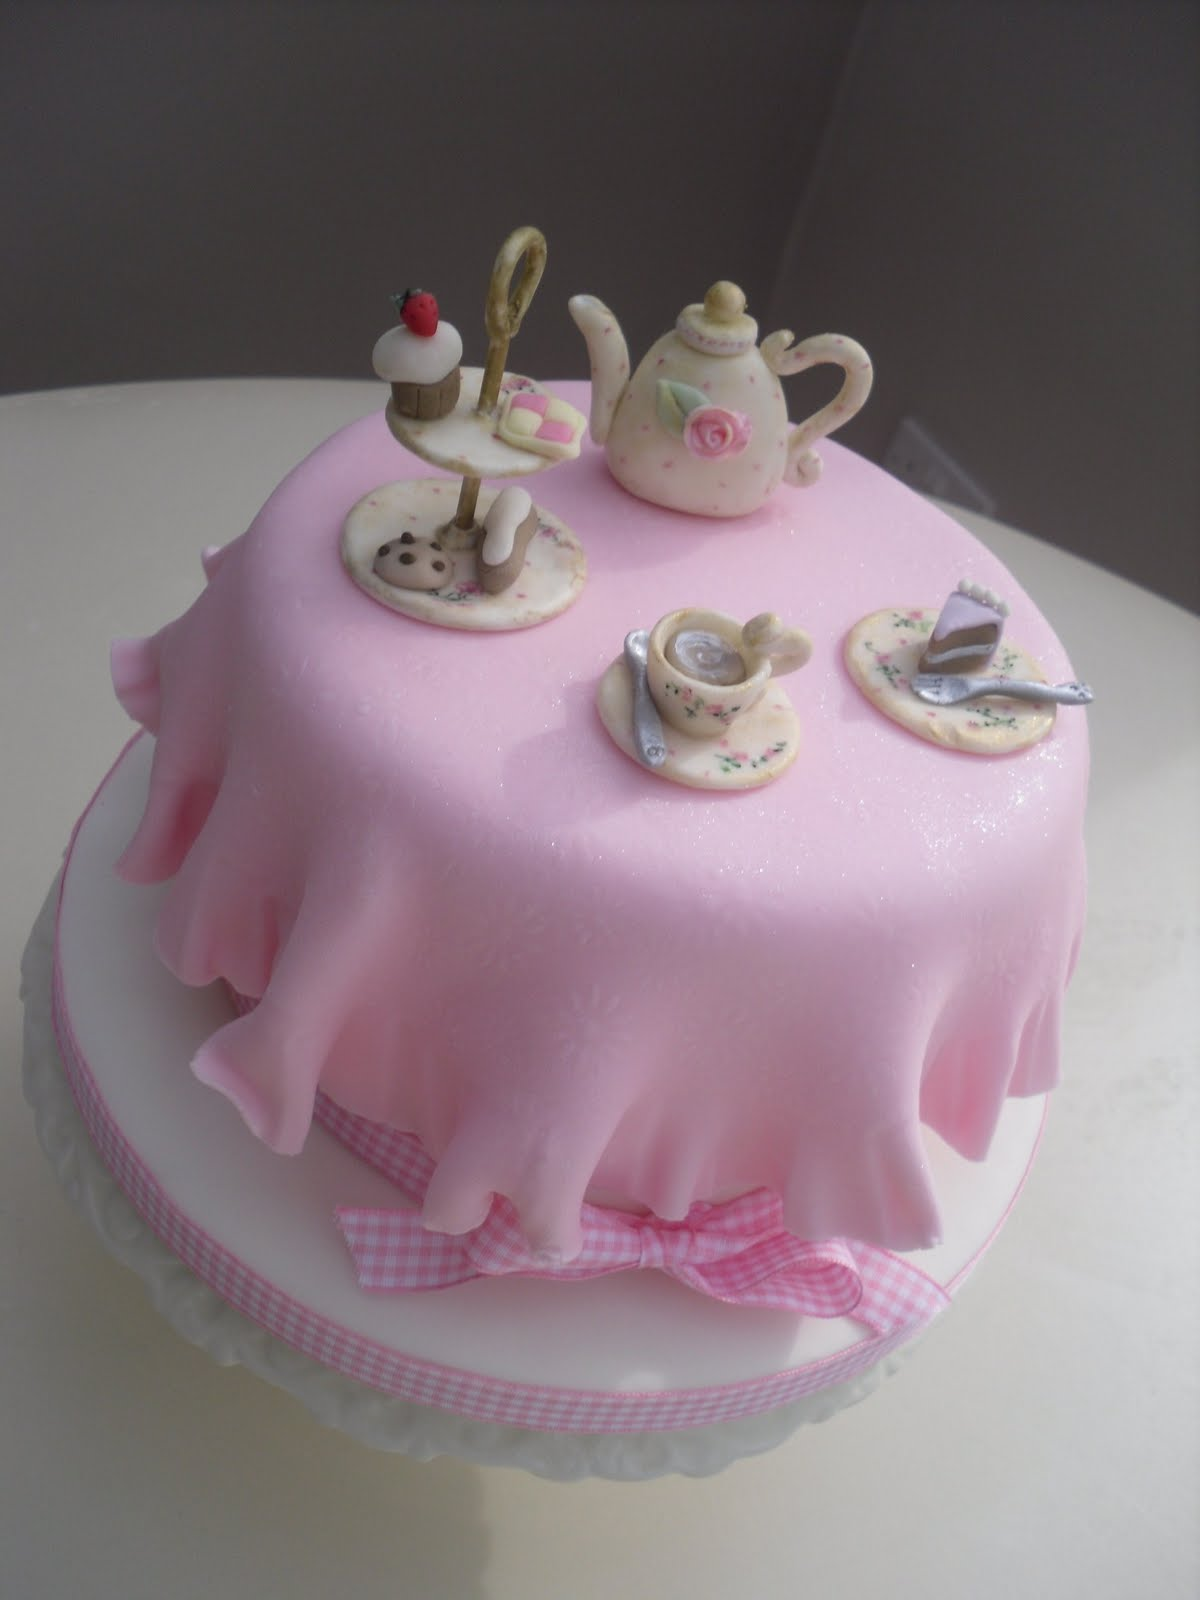 Tea Party Cake Images : Katies Cupcakes: Tea Party Cake